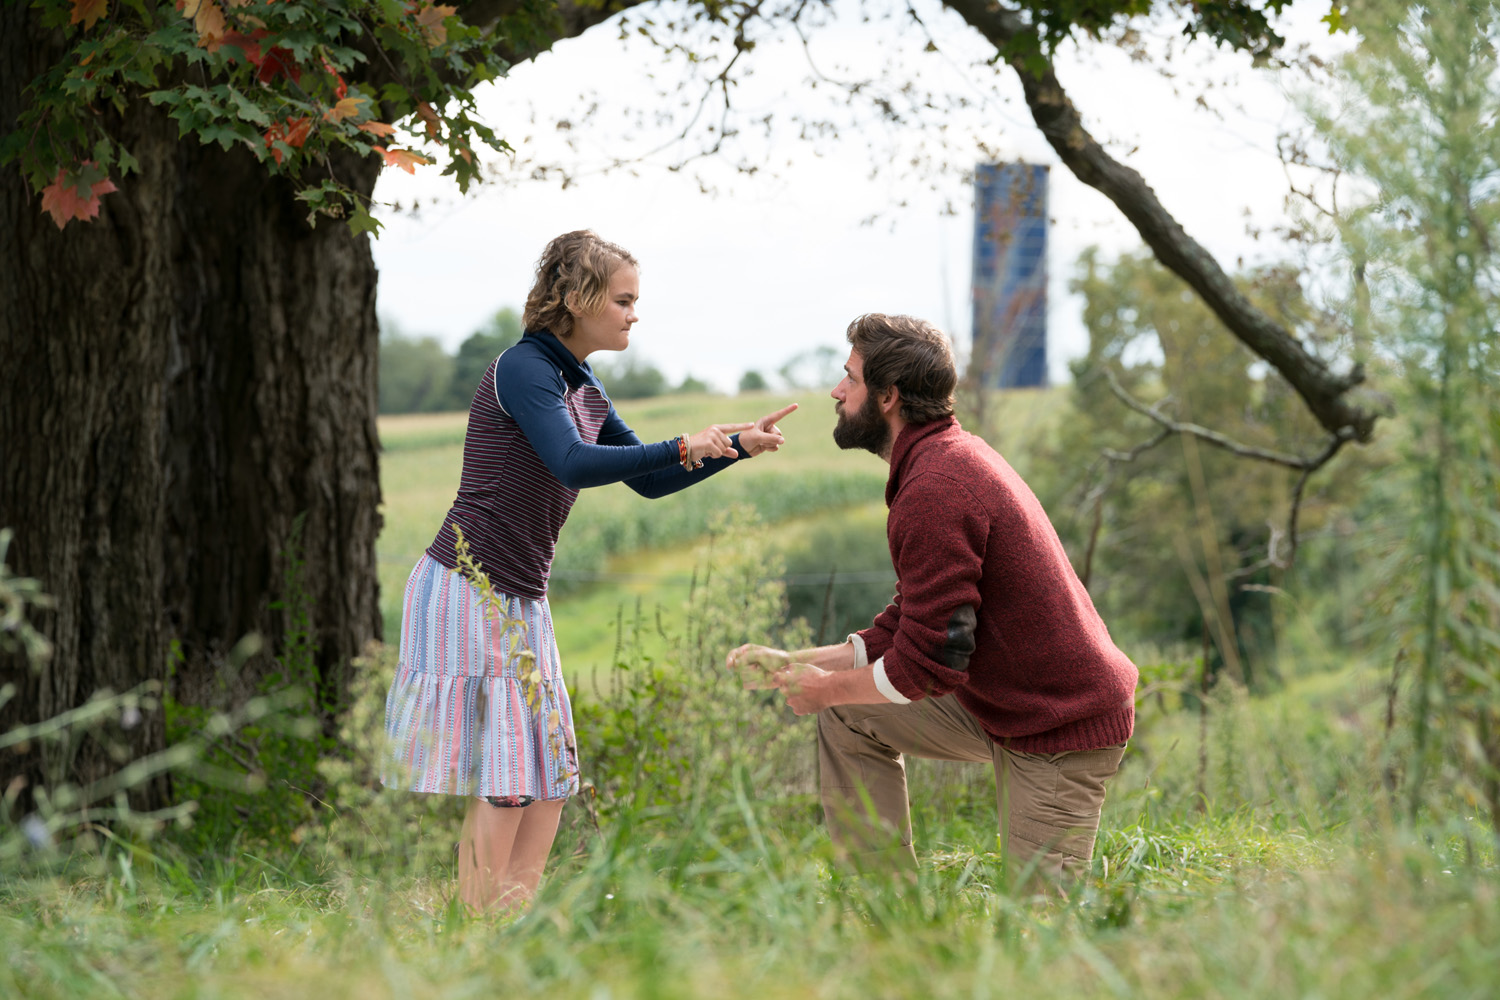 Left to right: Millicent Simmonds plays Regan Abbott and John Krasinski plays Lee Abbott in A QUIET PLACE, from Paramount Pictures.